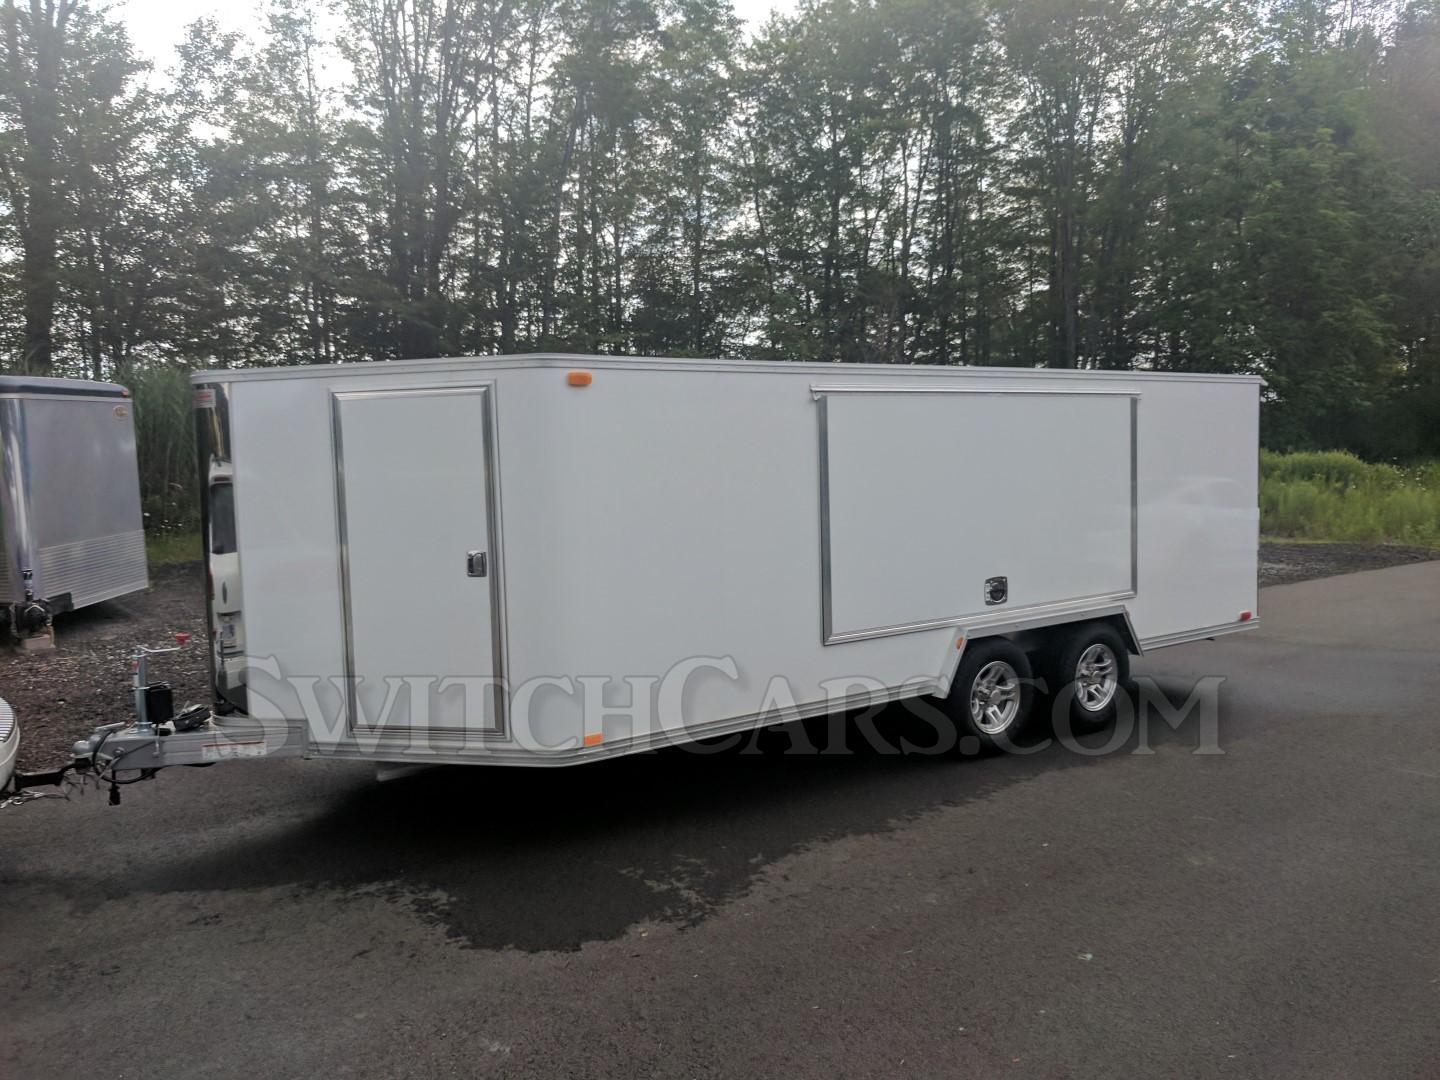 2016 Trailex Cte 84180 Enclosed Car Trailer For Sale At Switchcars Inc